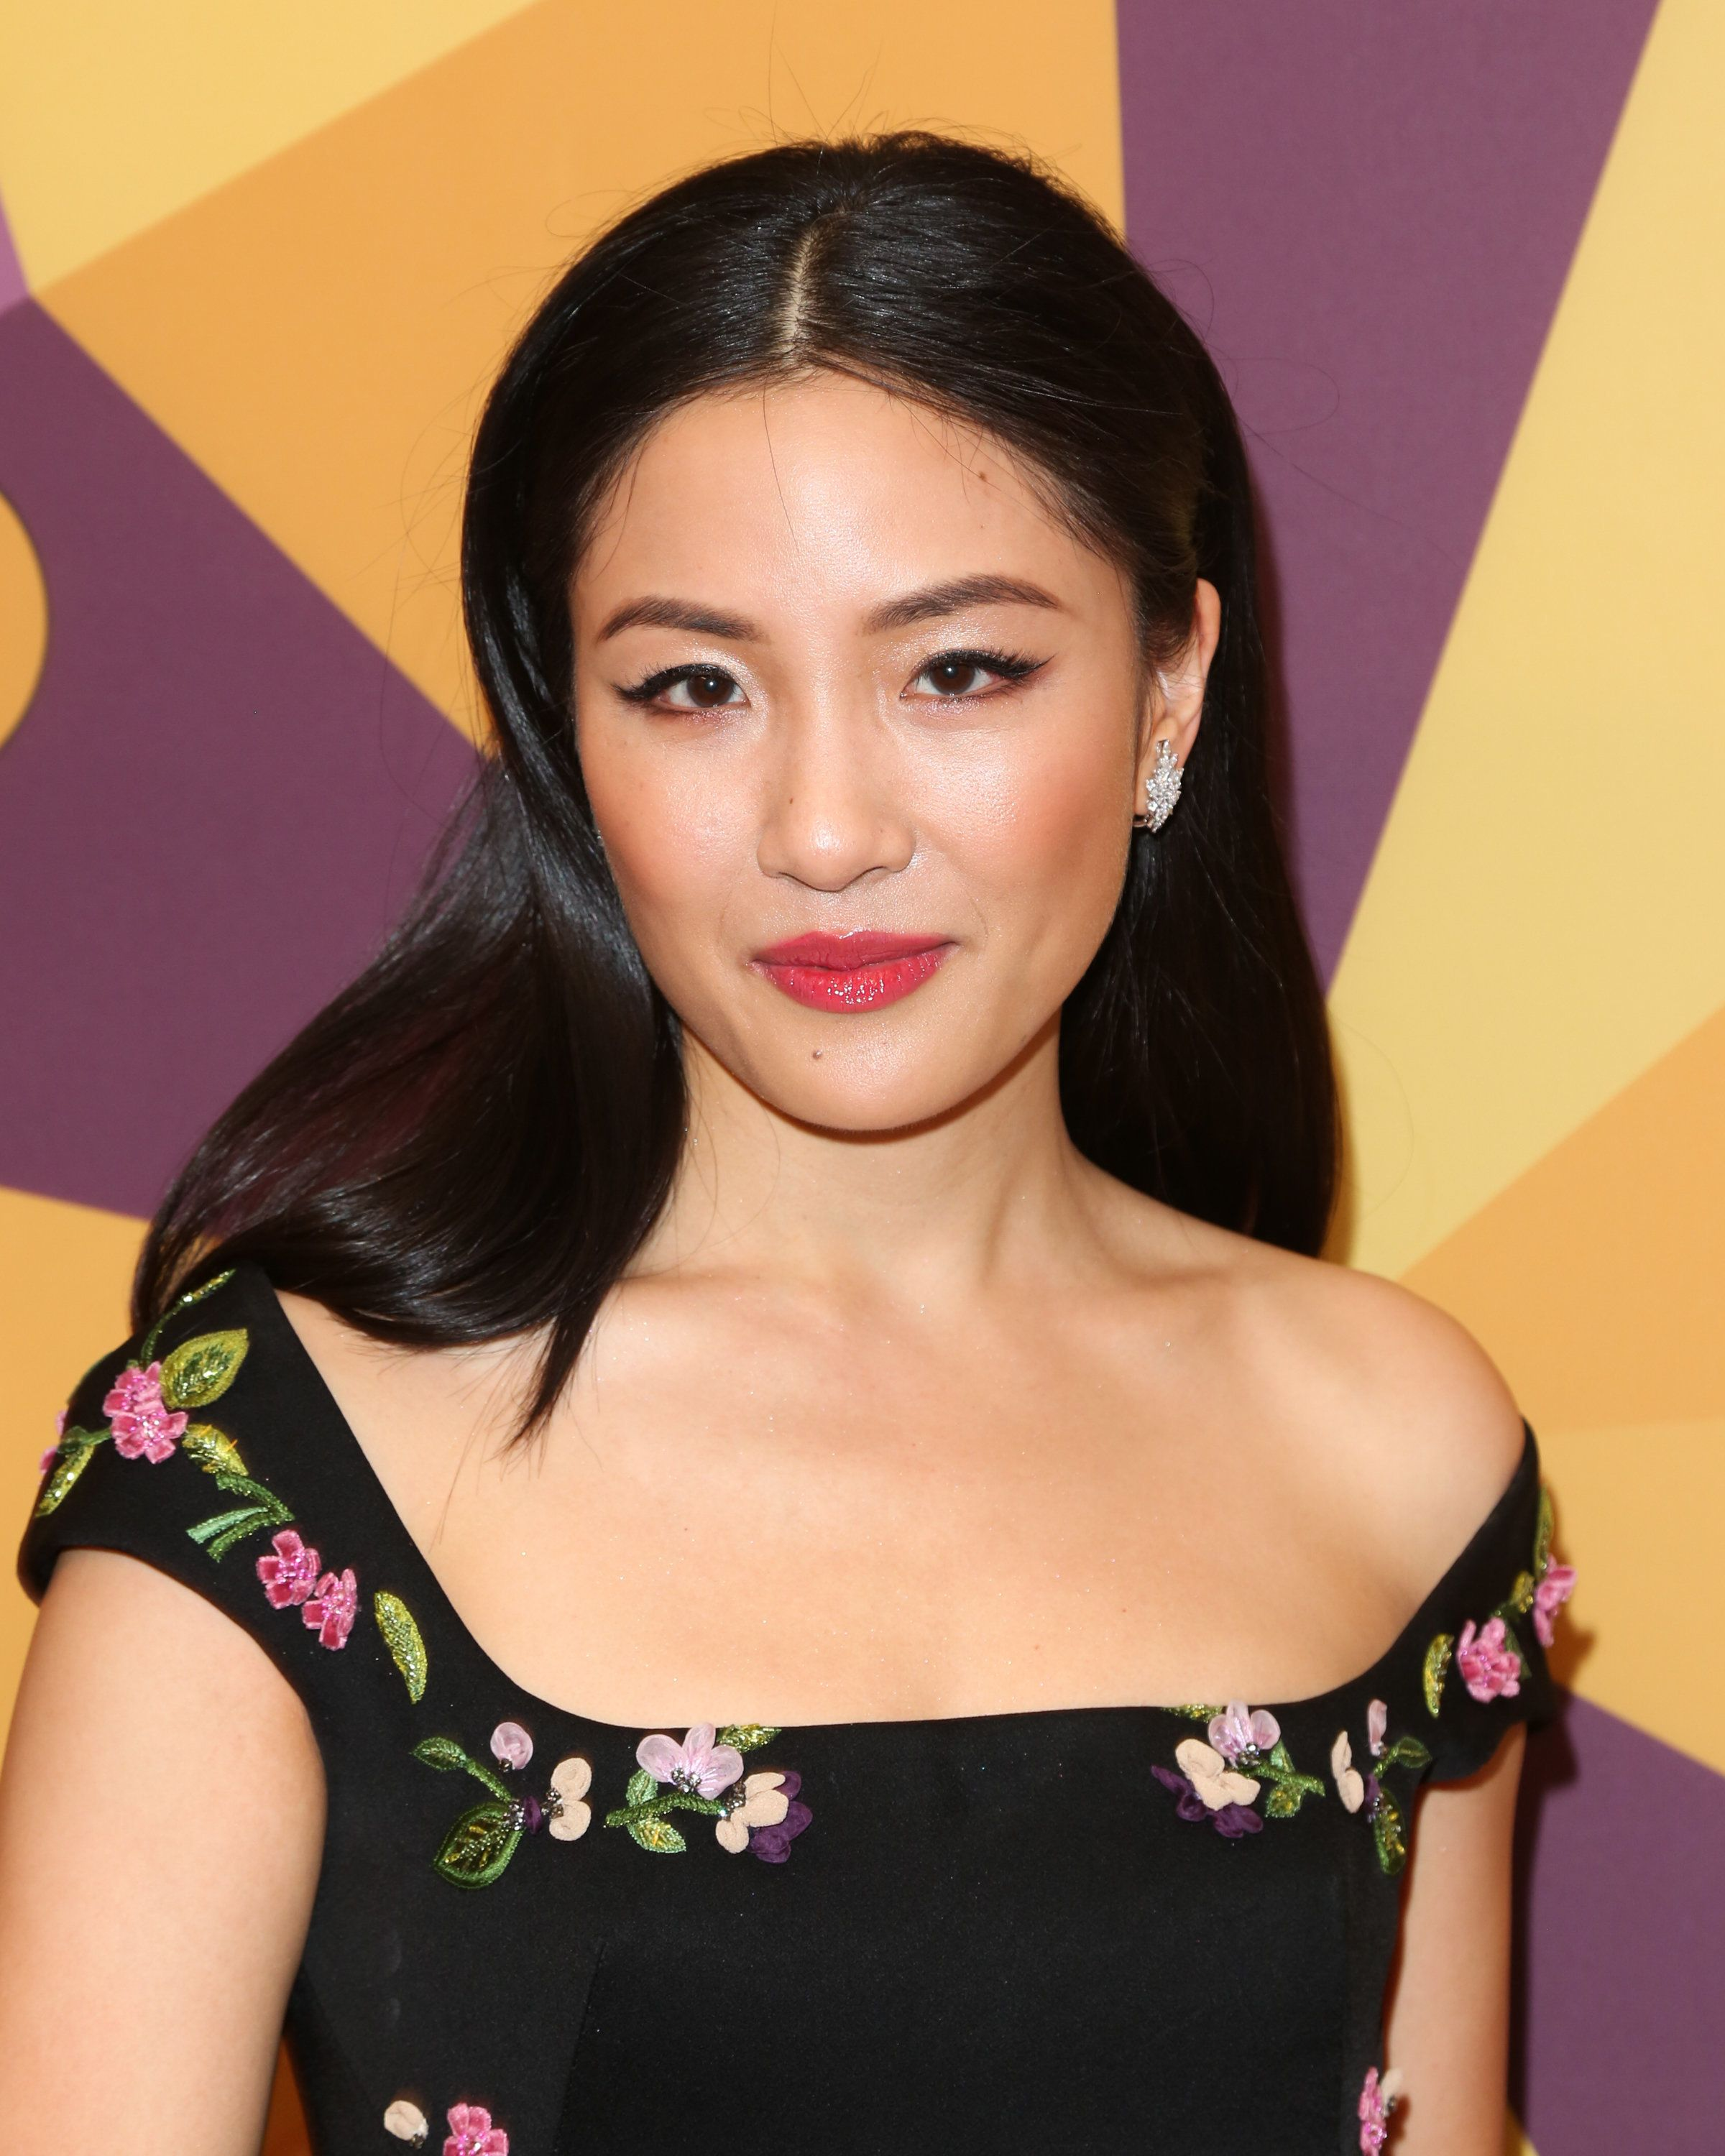 LOS ANGELES, CA - JANUARY 07:  Actress Constance Wu attends HBO's official Golden Globe Awards after party at The Circa 55 Restaurant on January 7, 2018 in Los Angeles, California.  (Photo by Paul Archuleta/FilmMagic)